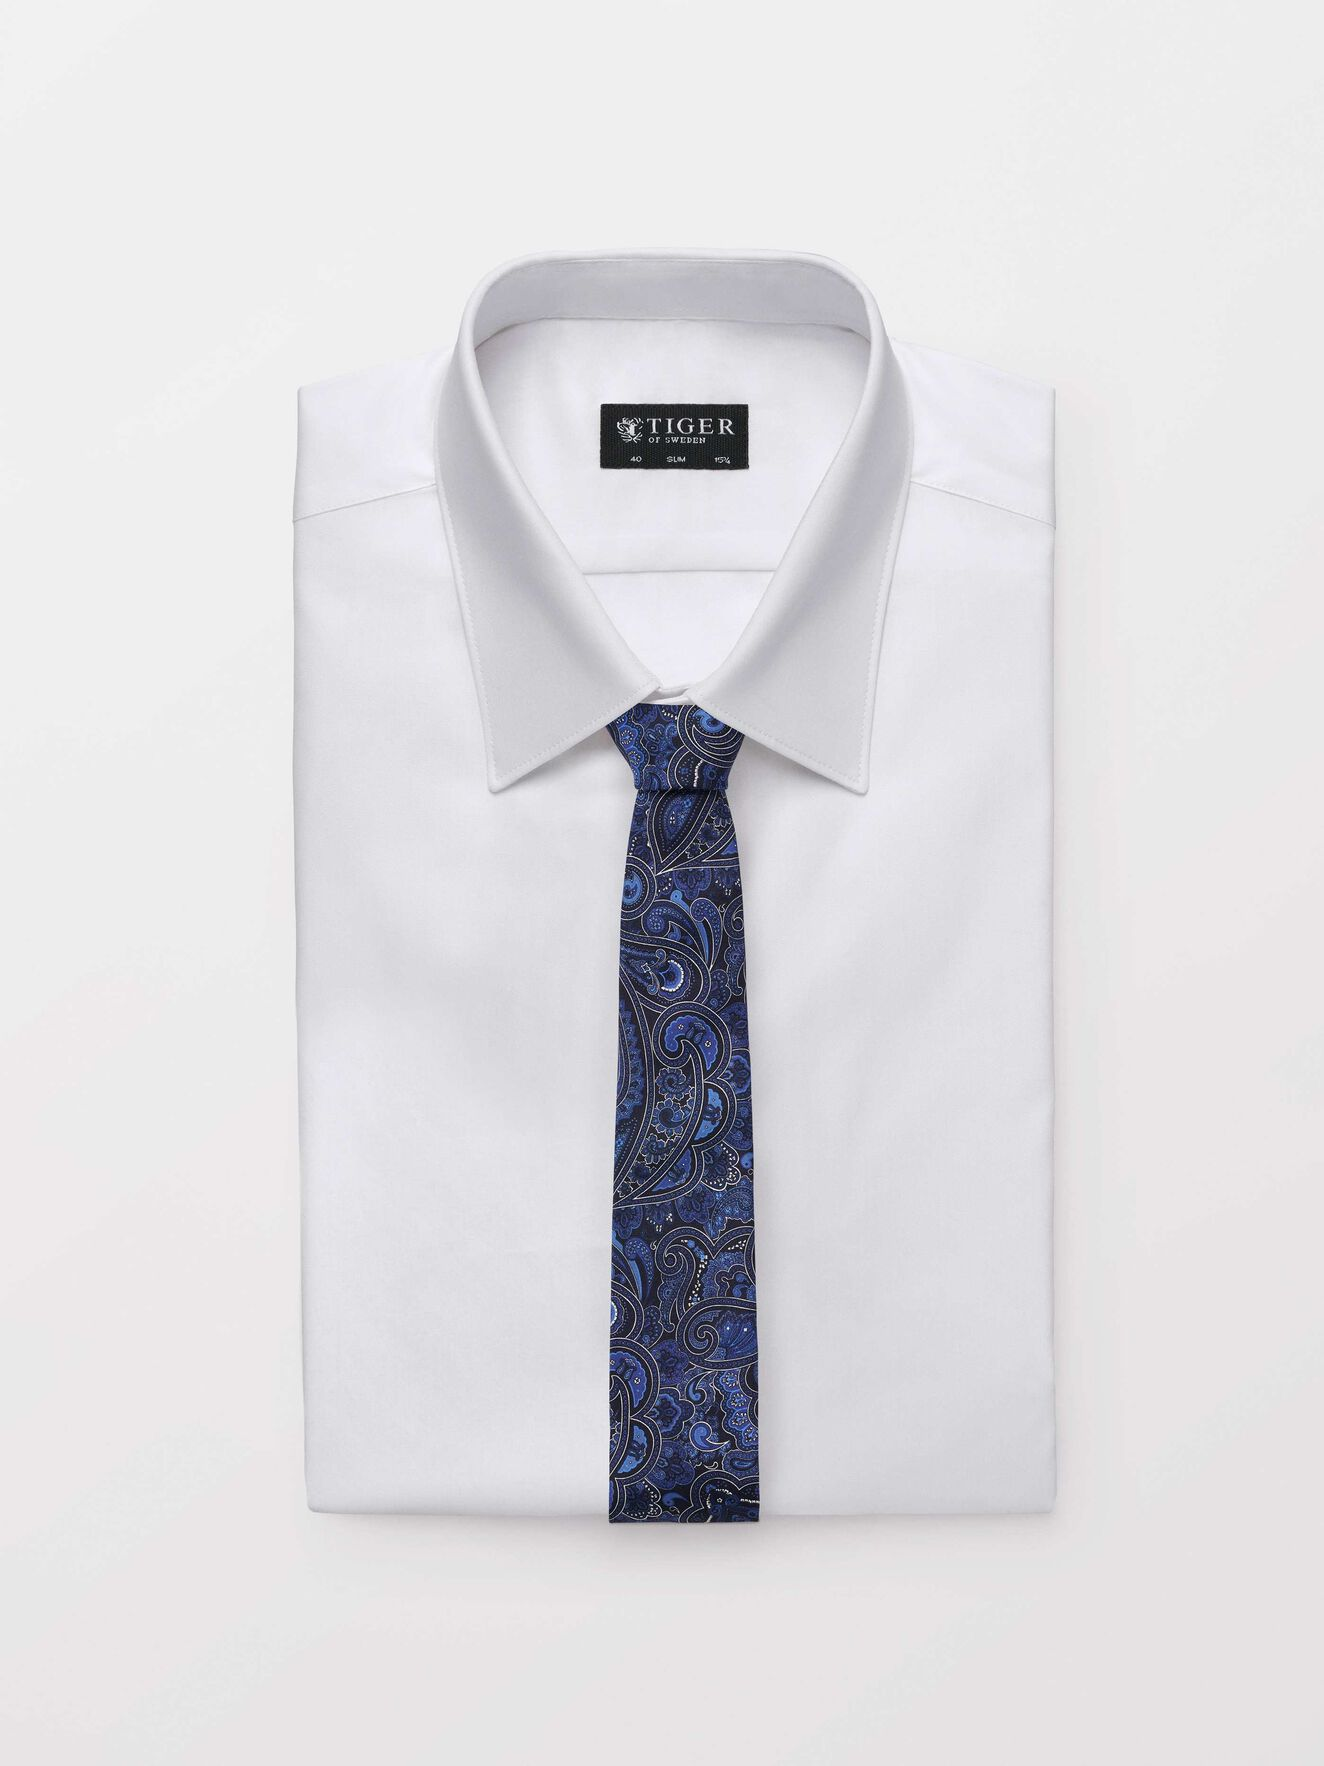 Trigon Tie in Light Ink from Tiger of Sweden